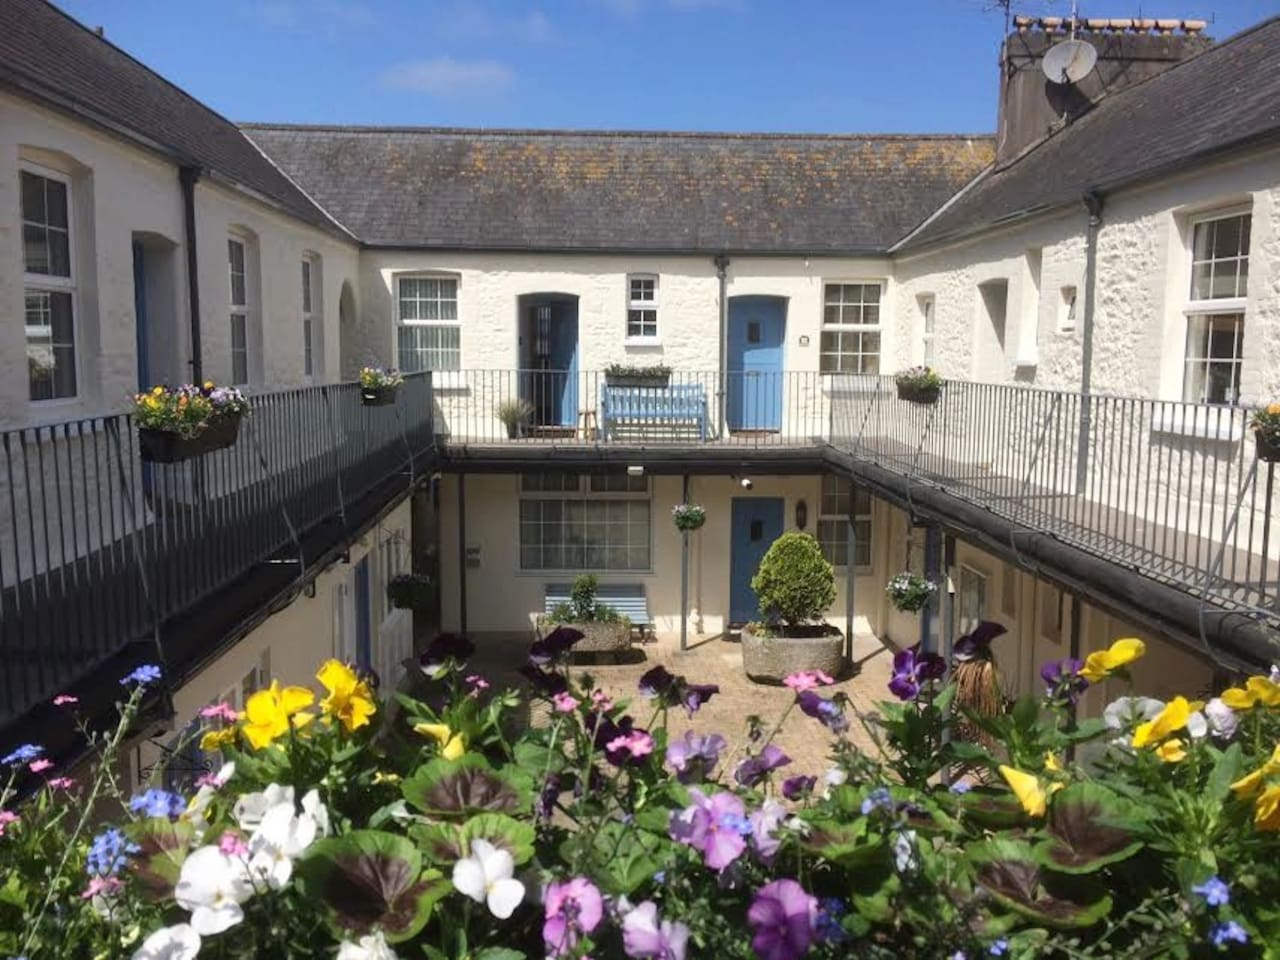 The Picturesque Mews Courtyard